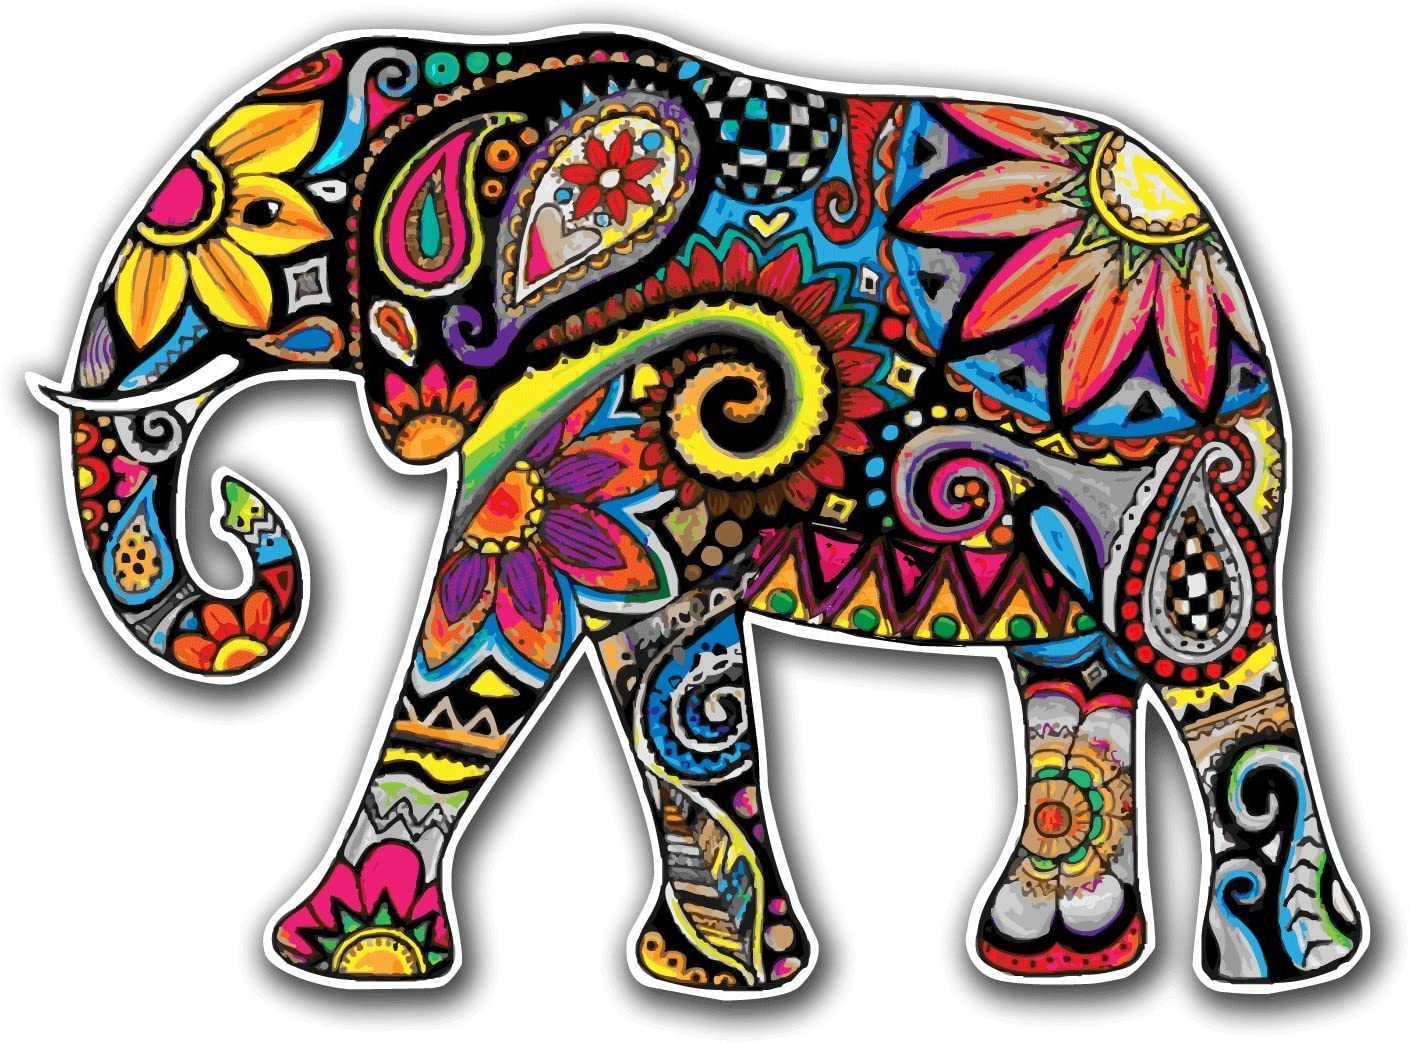 Color Pencil Paisley Elephant - 5 Inch Full Color Decal for Macbooks or Laptops - Proudly Made in The USA from Adhesive Vinyl